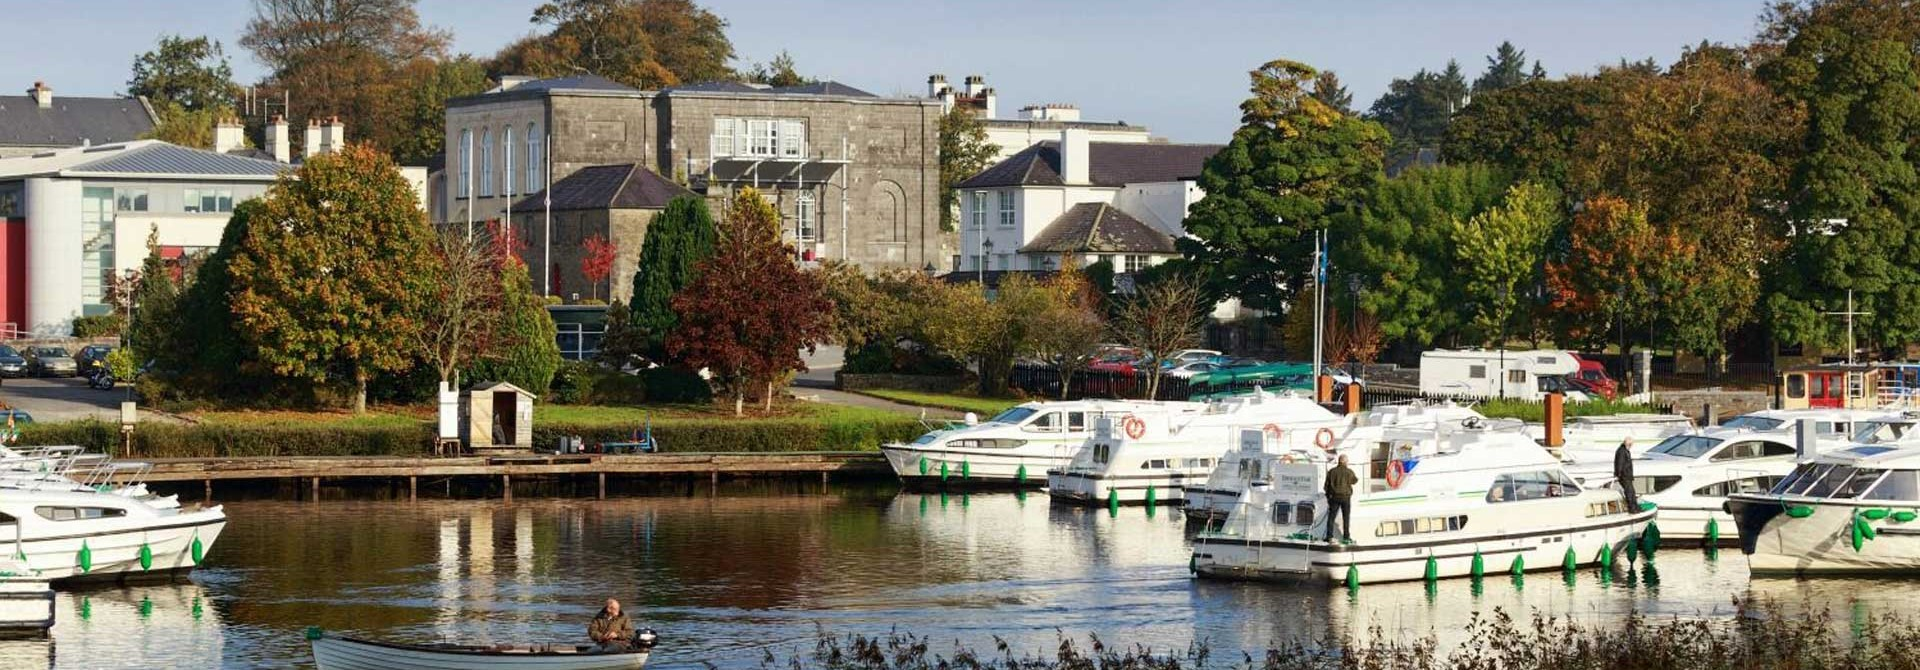 Find a group in Carrick-on-Shannon - Meetup